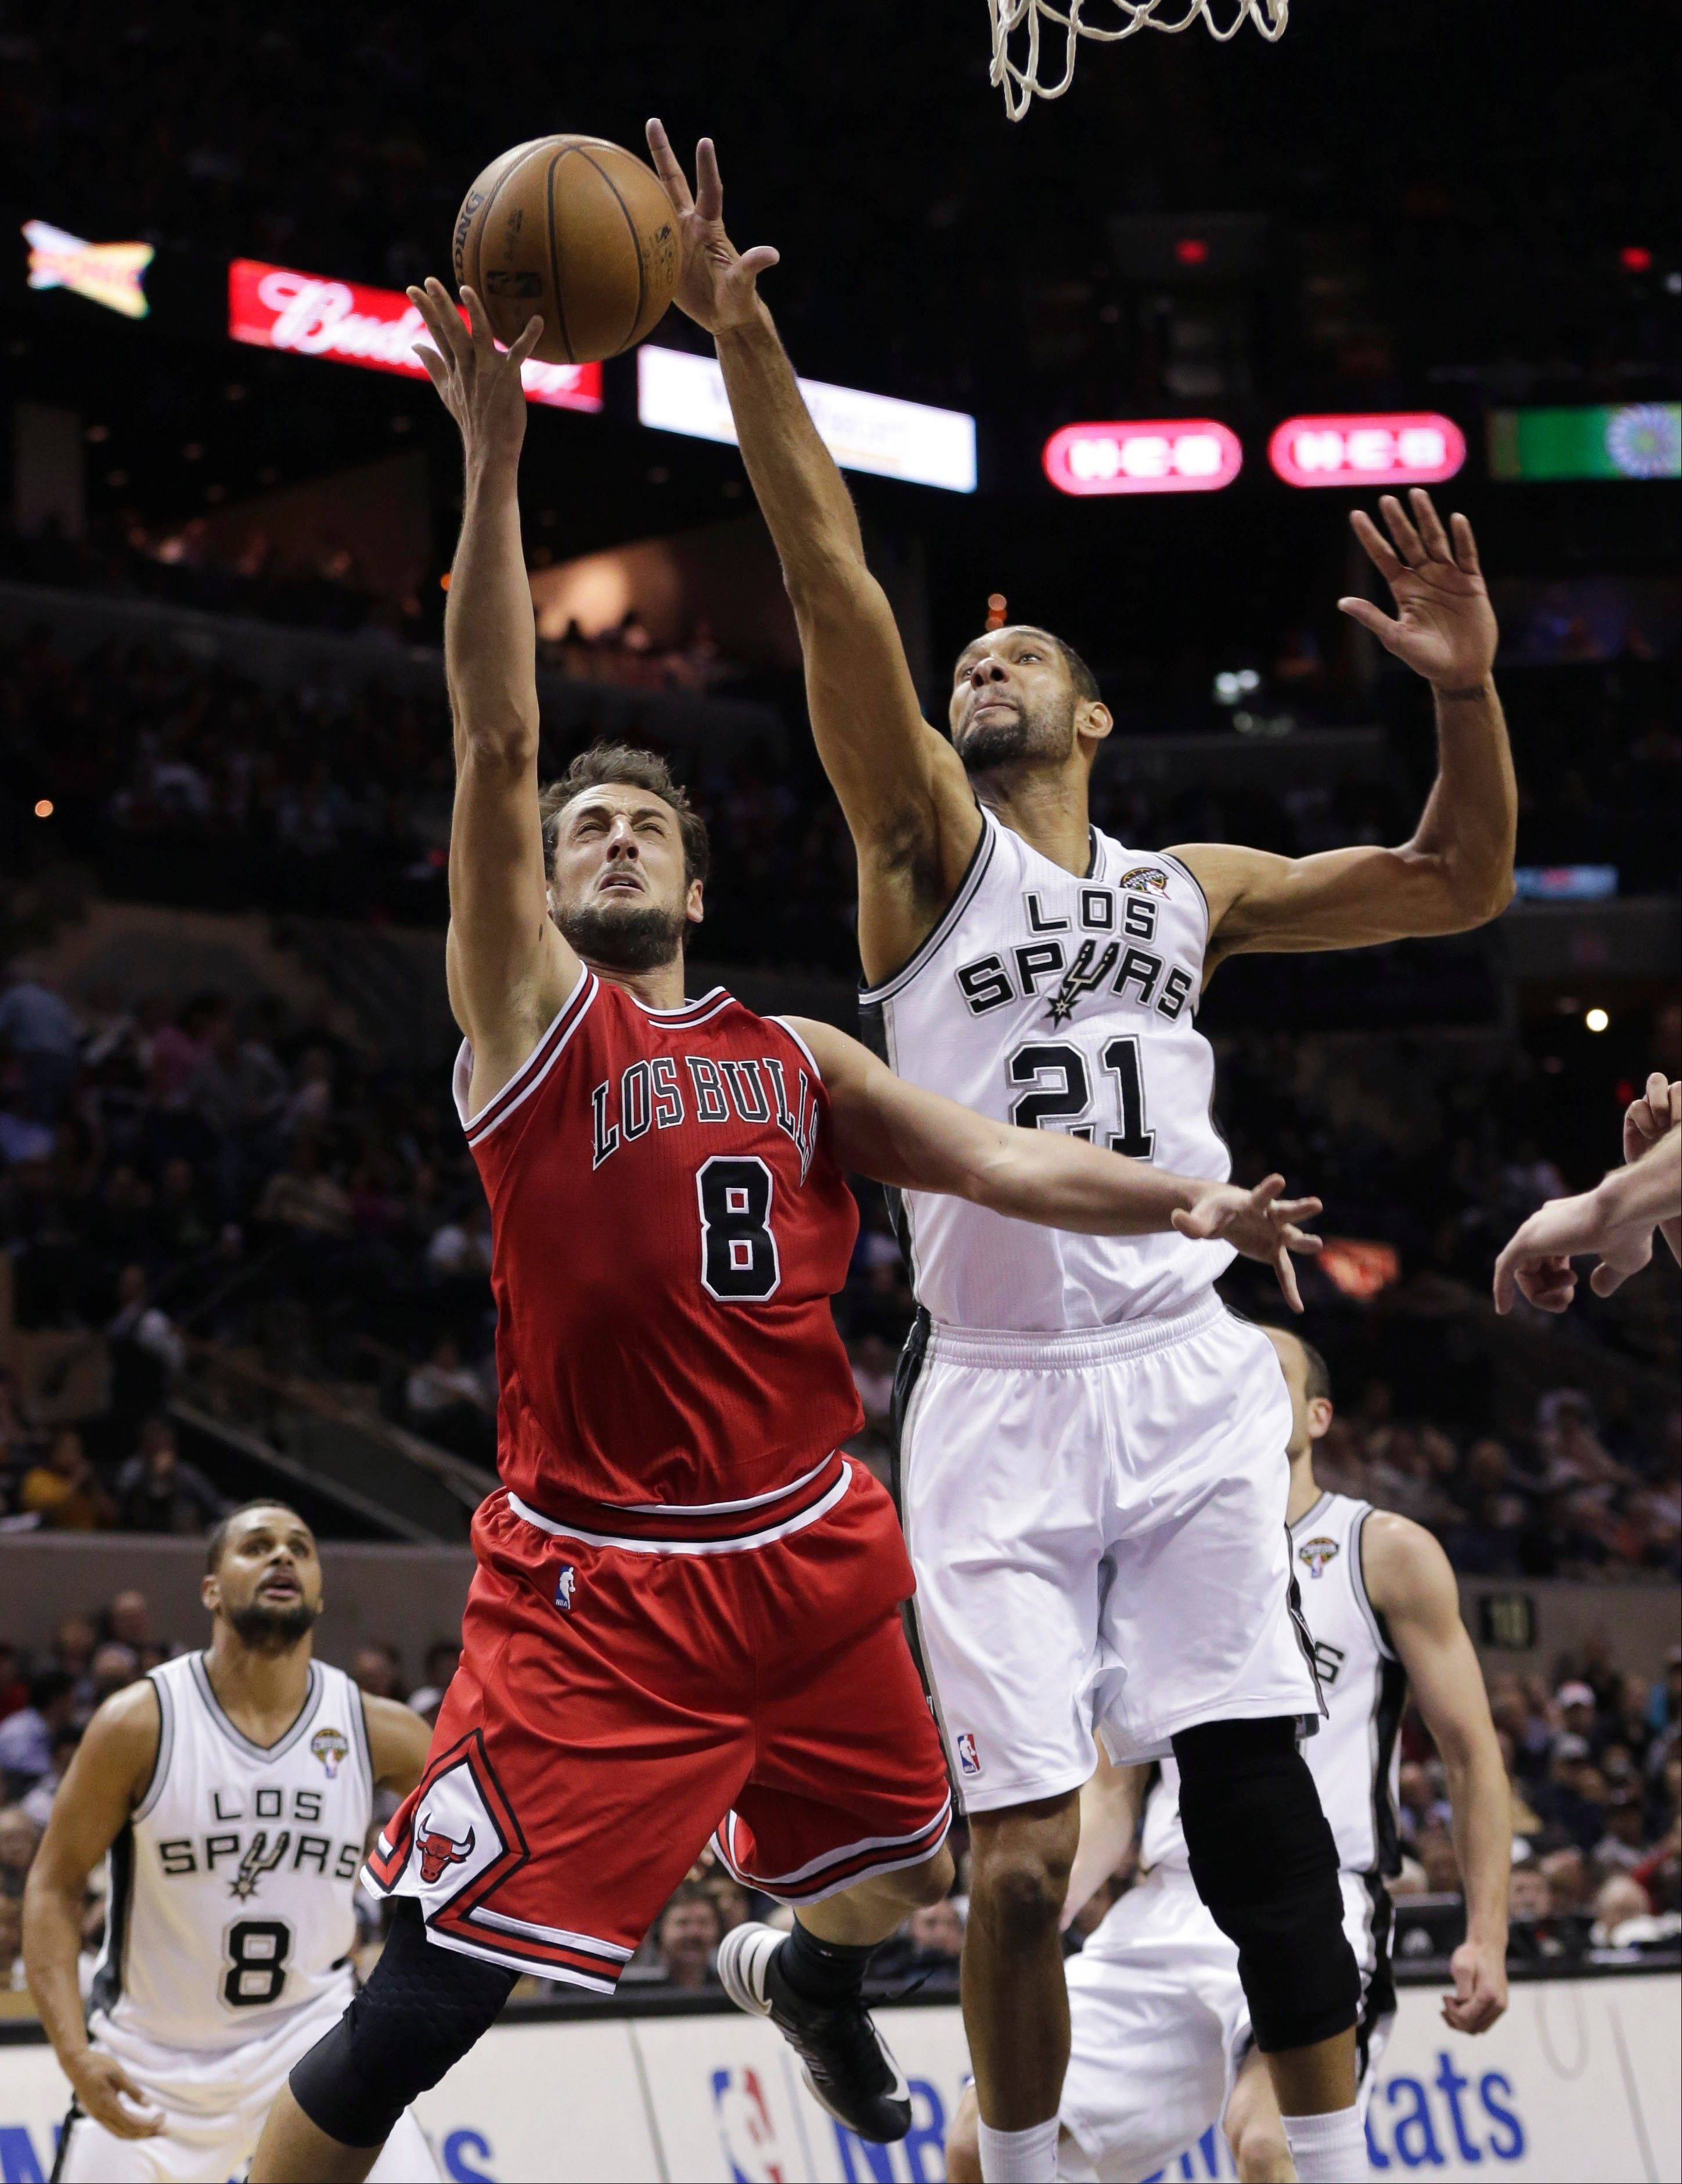 Chicago Bulls' Marco Belinelli (8) drives to the basket past San Antonio Spurs' Tim Duncan (21) during the second half of an NBA basketball game on Wednesday, March 6, 2013, in San Antonio. San Antonio won 101-83.